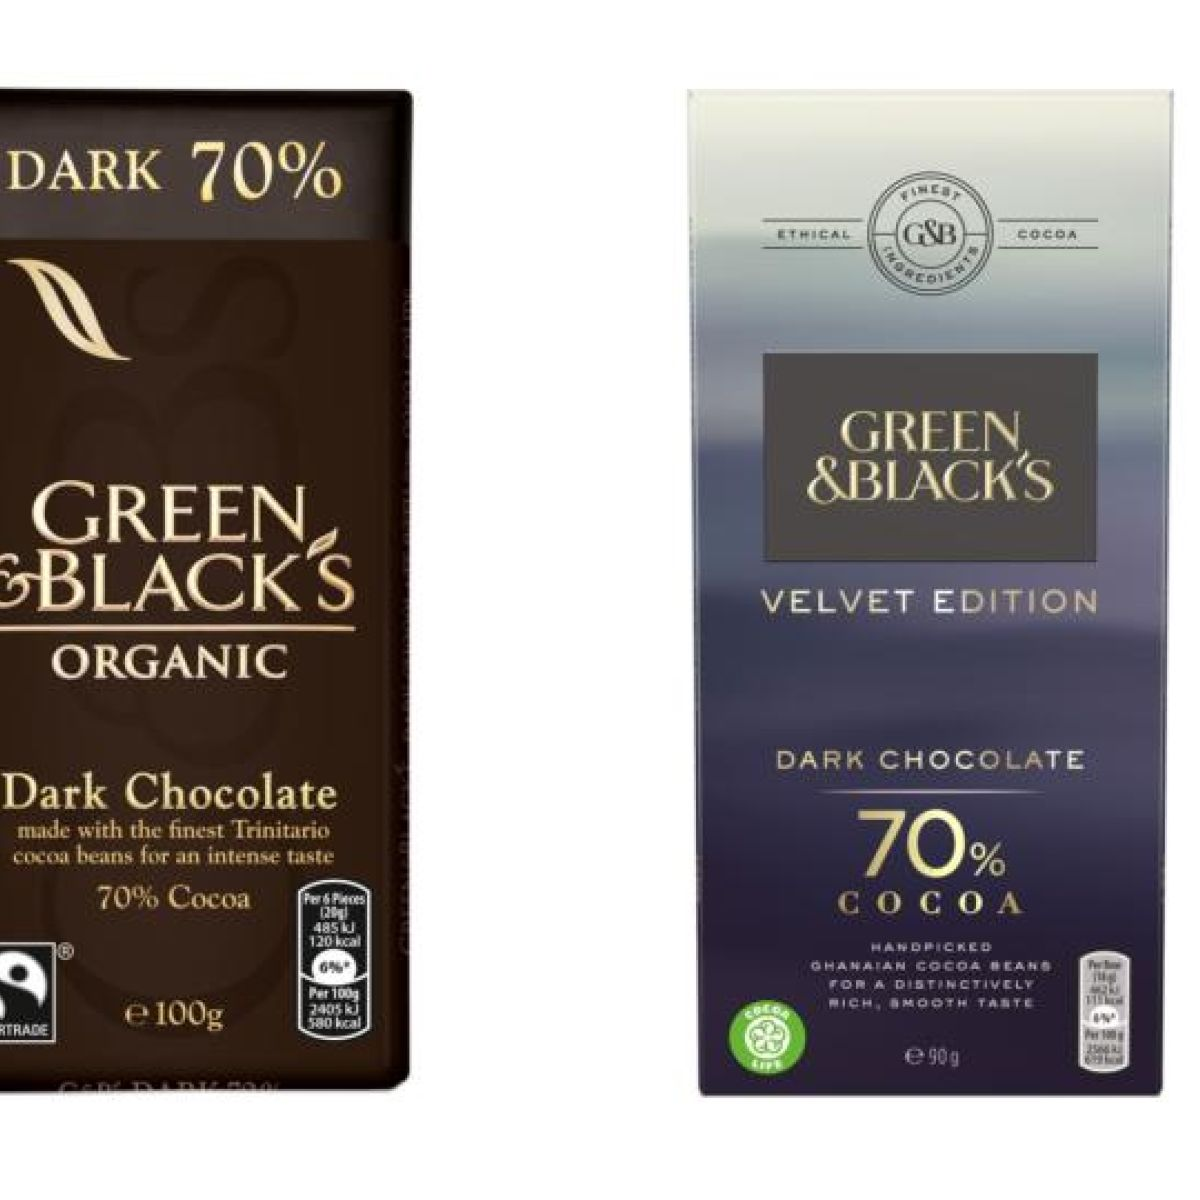 Dairy Milk to become Fairtrade certified Dairy Milk to become Fairtrade certified new foto